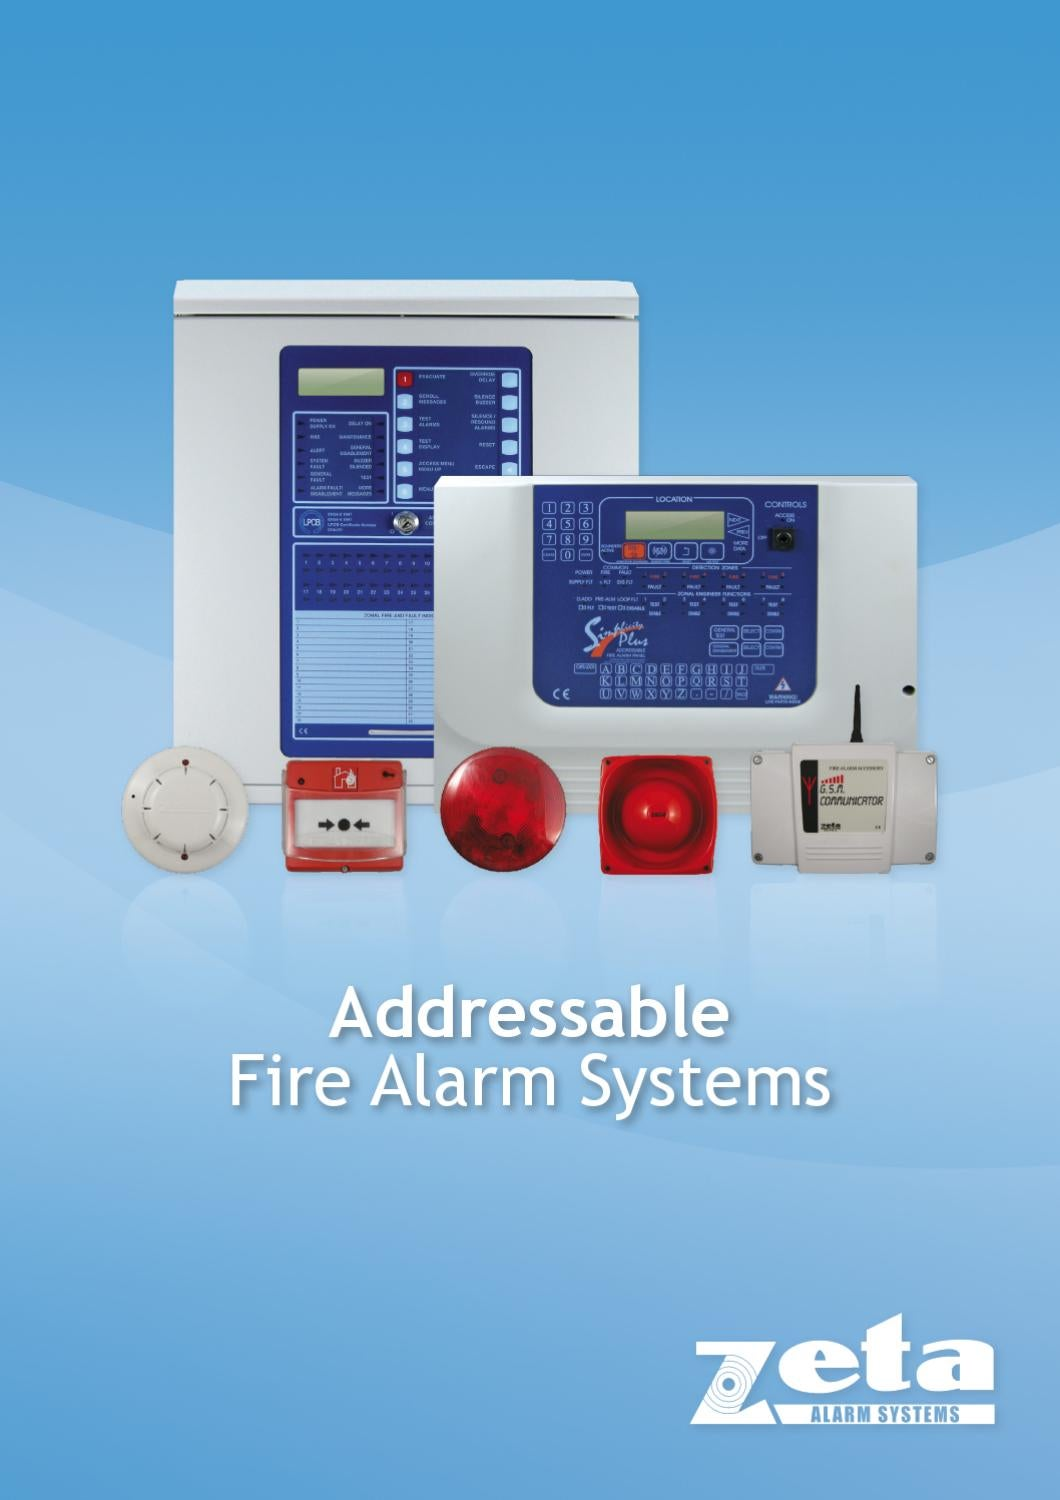 Addressable Fire Alarm Systems By Zeta Alarm Systems